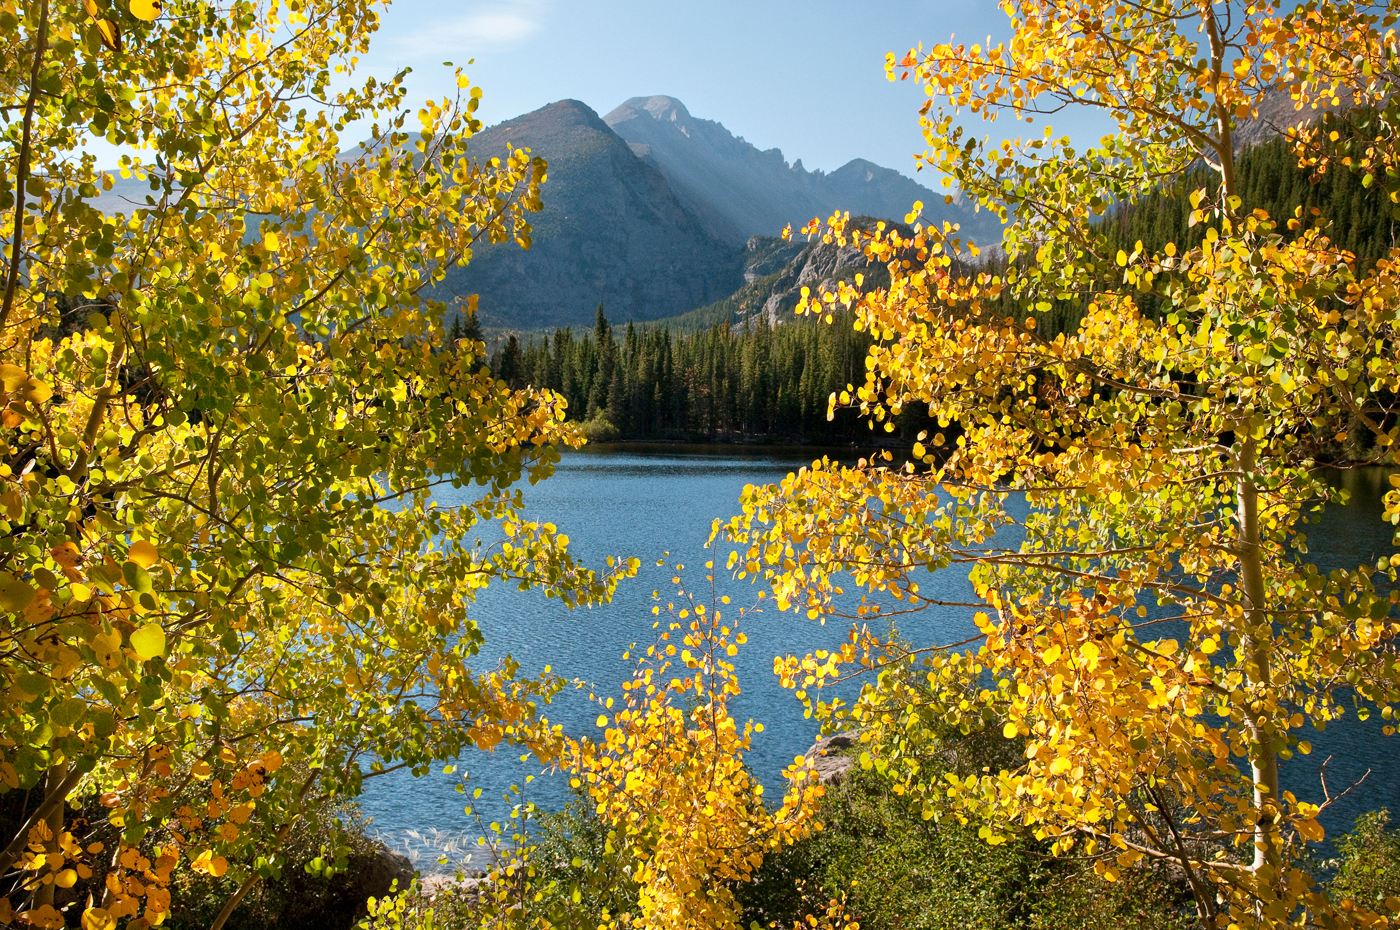 Fall leaves by a lake